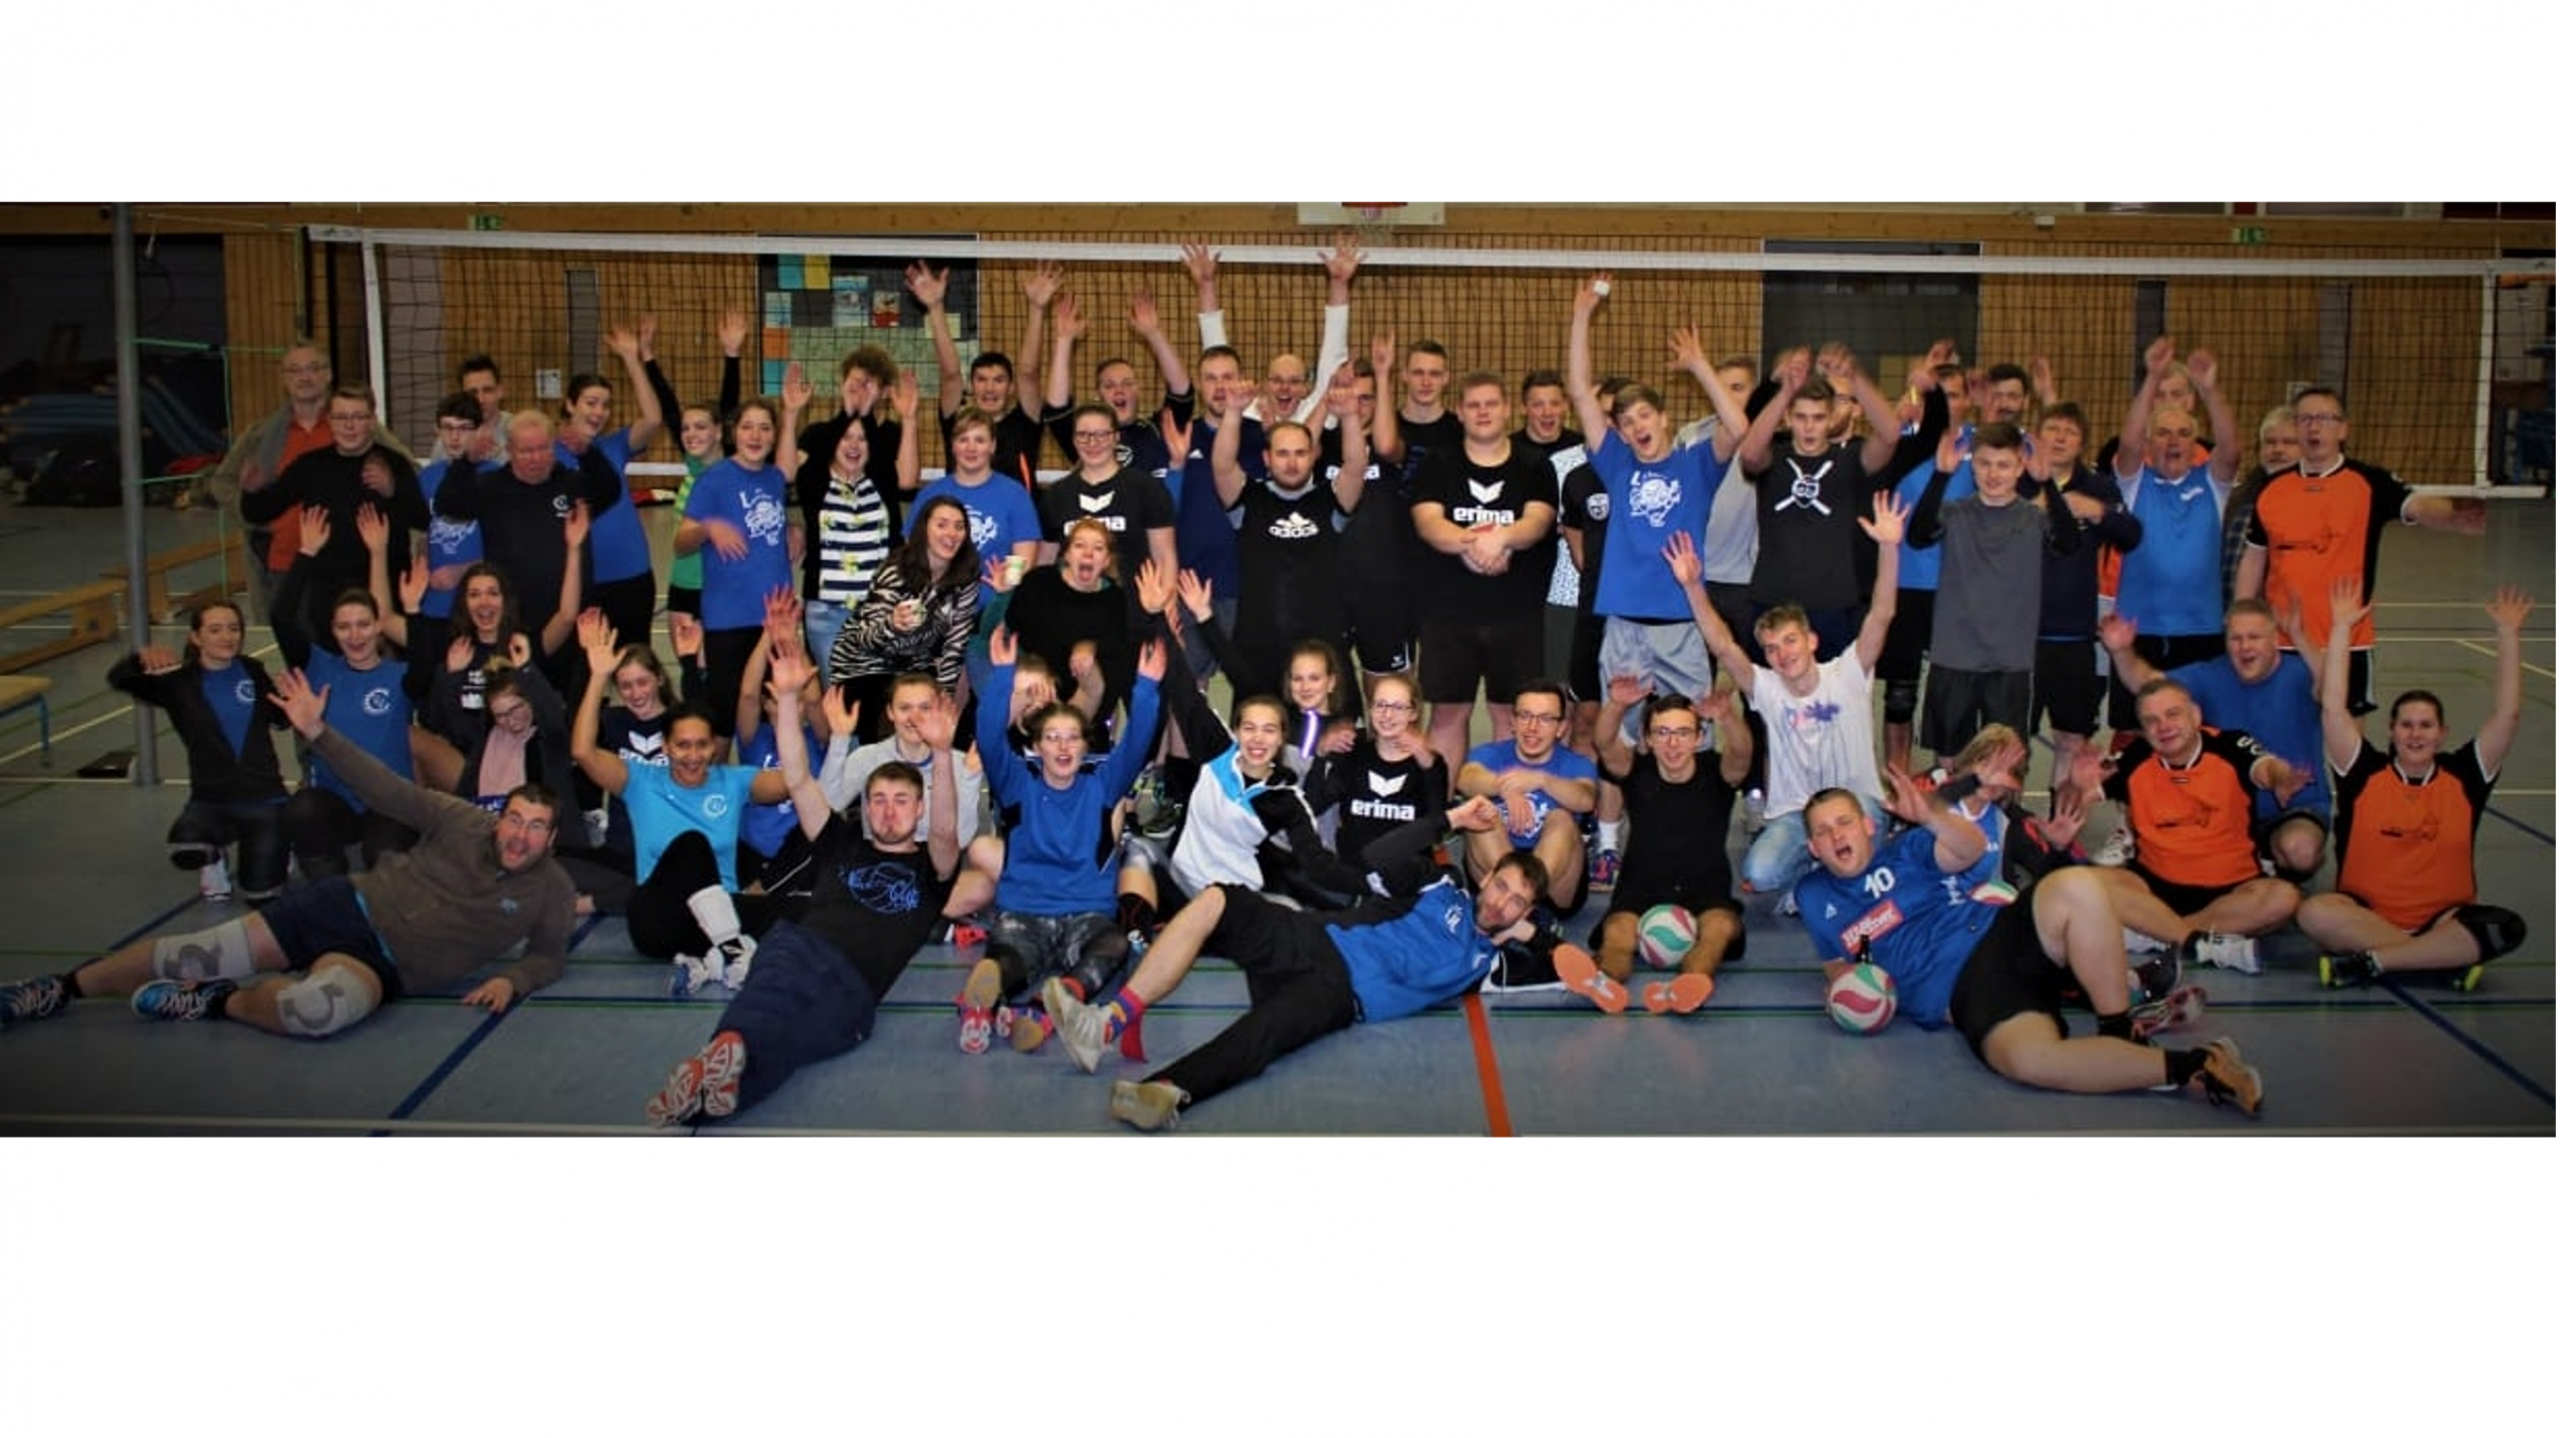 Header Image - Cottbuser Volleyballverein